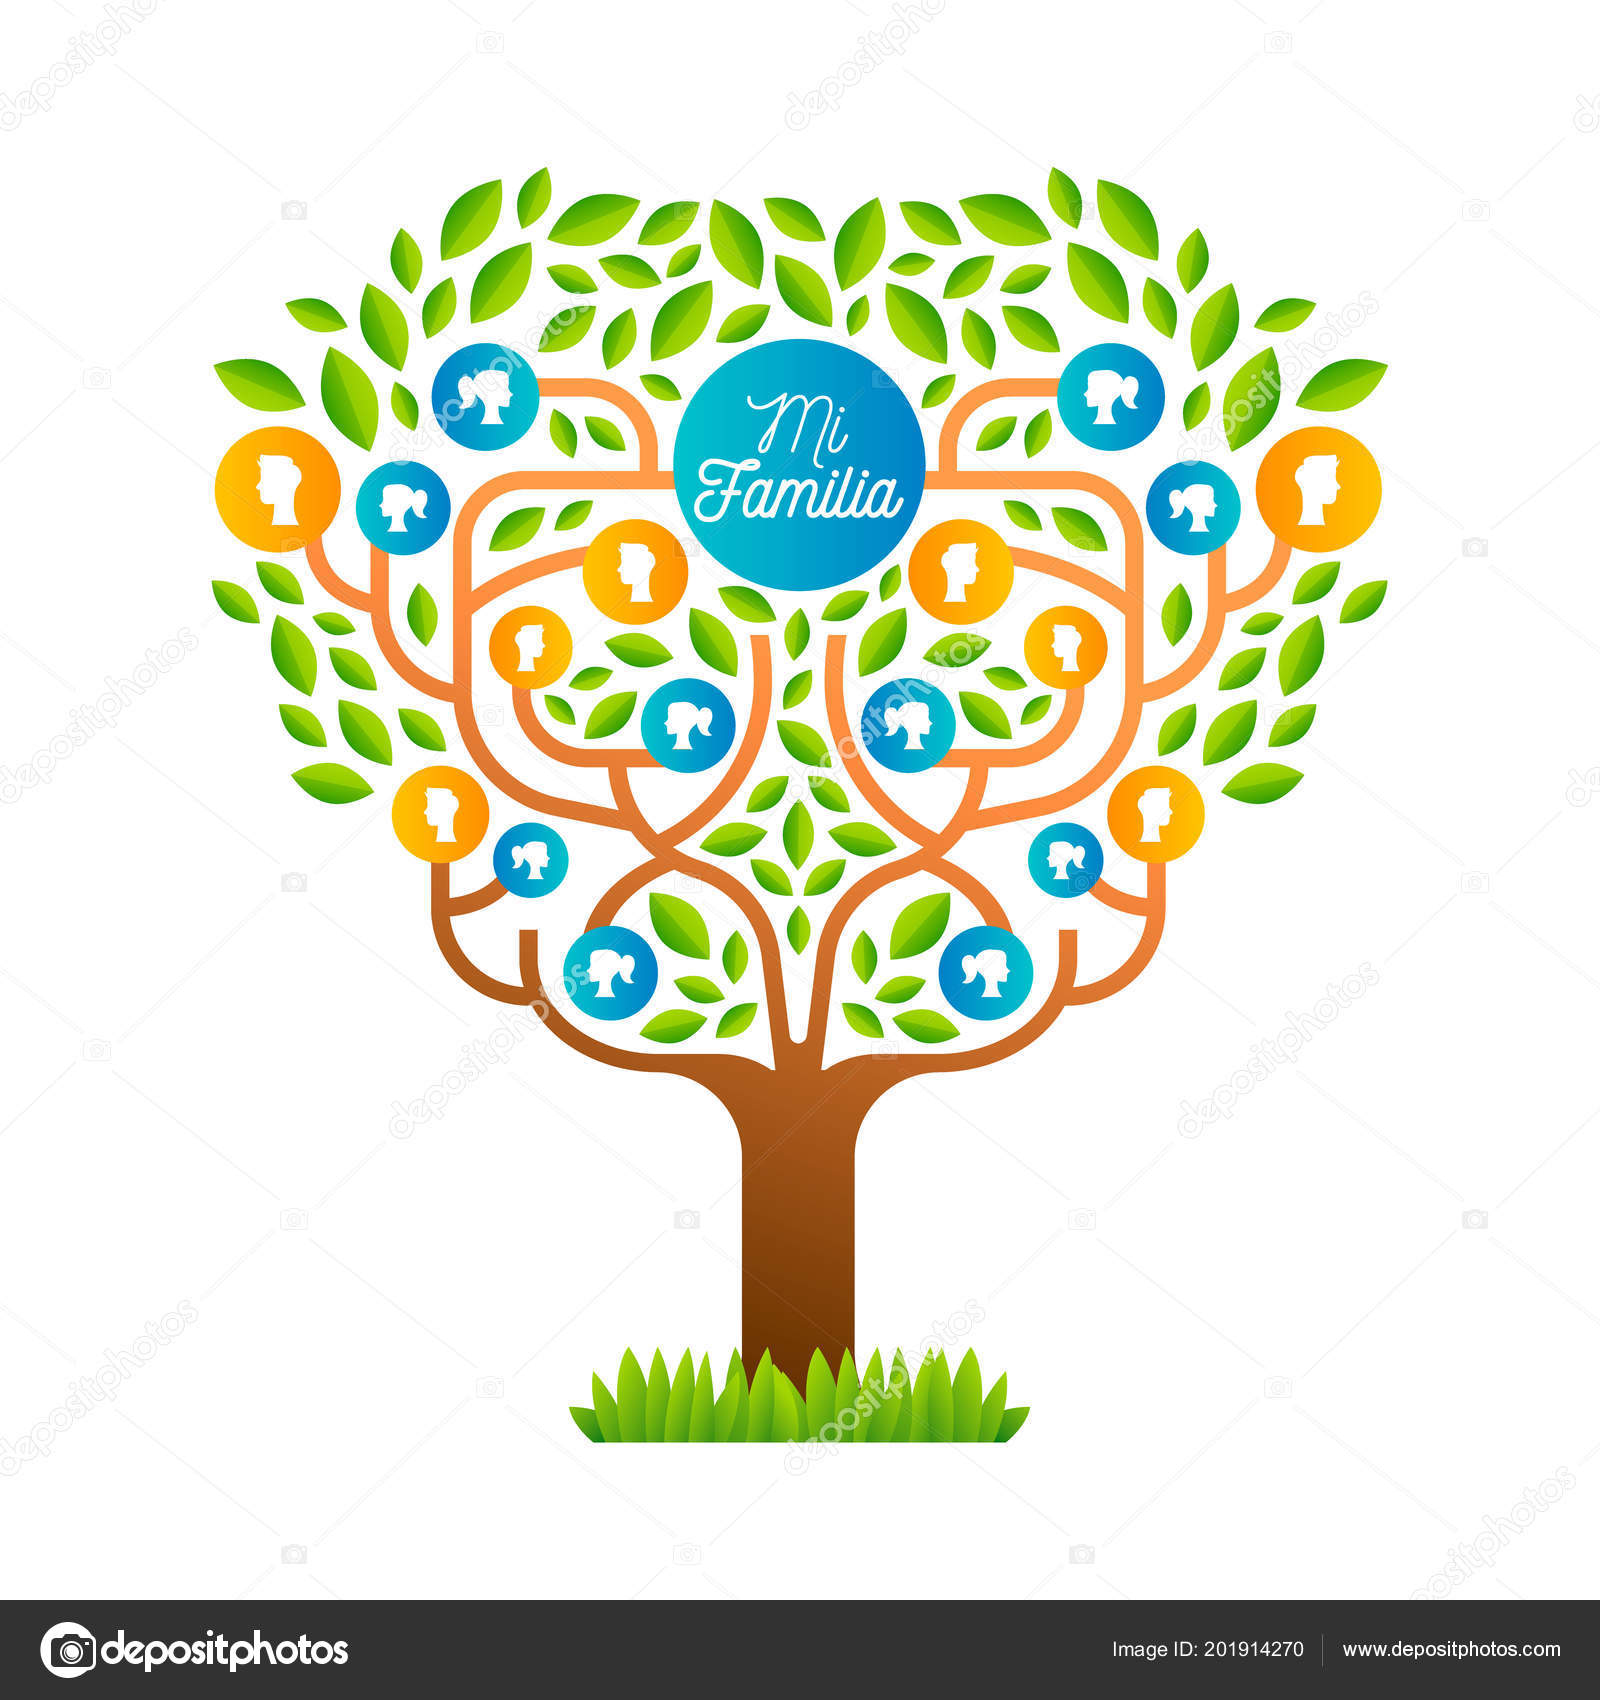 Big Family Tree Template Spanish Language Illustration Concept